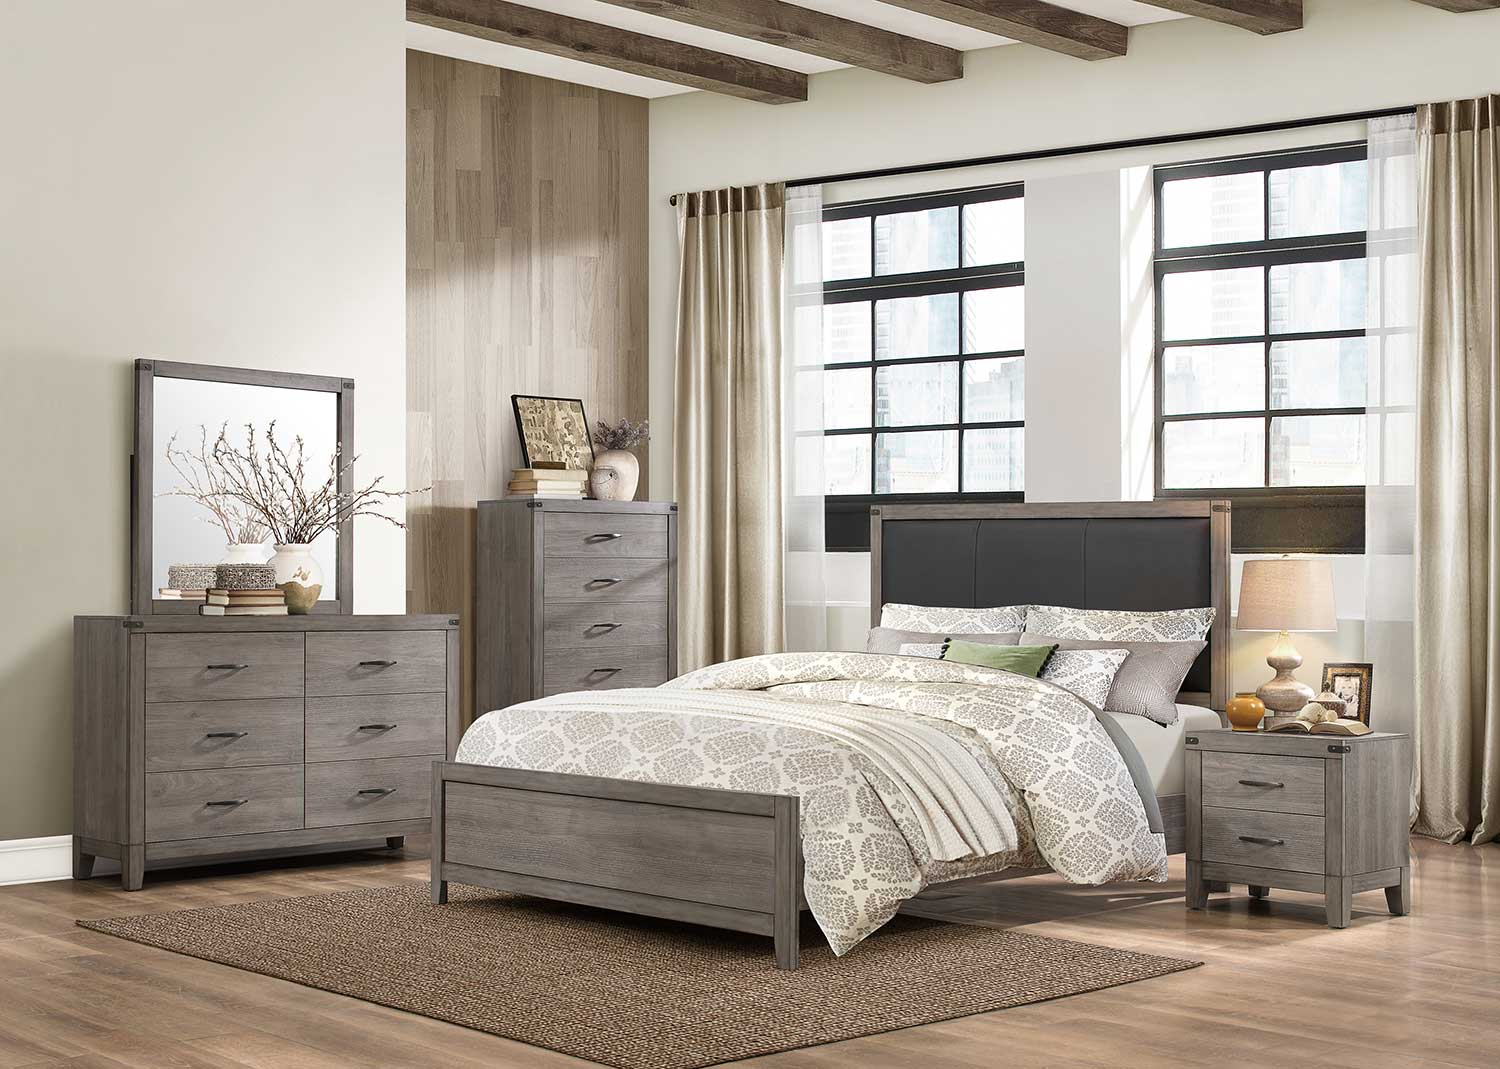 Homelegance Woodrow Bedroom Set - Weathered - Black Bi-cast Vinyl